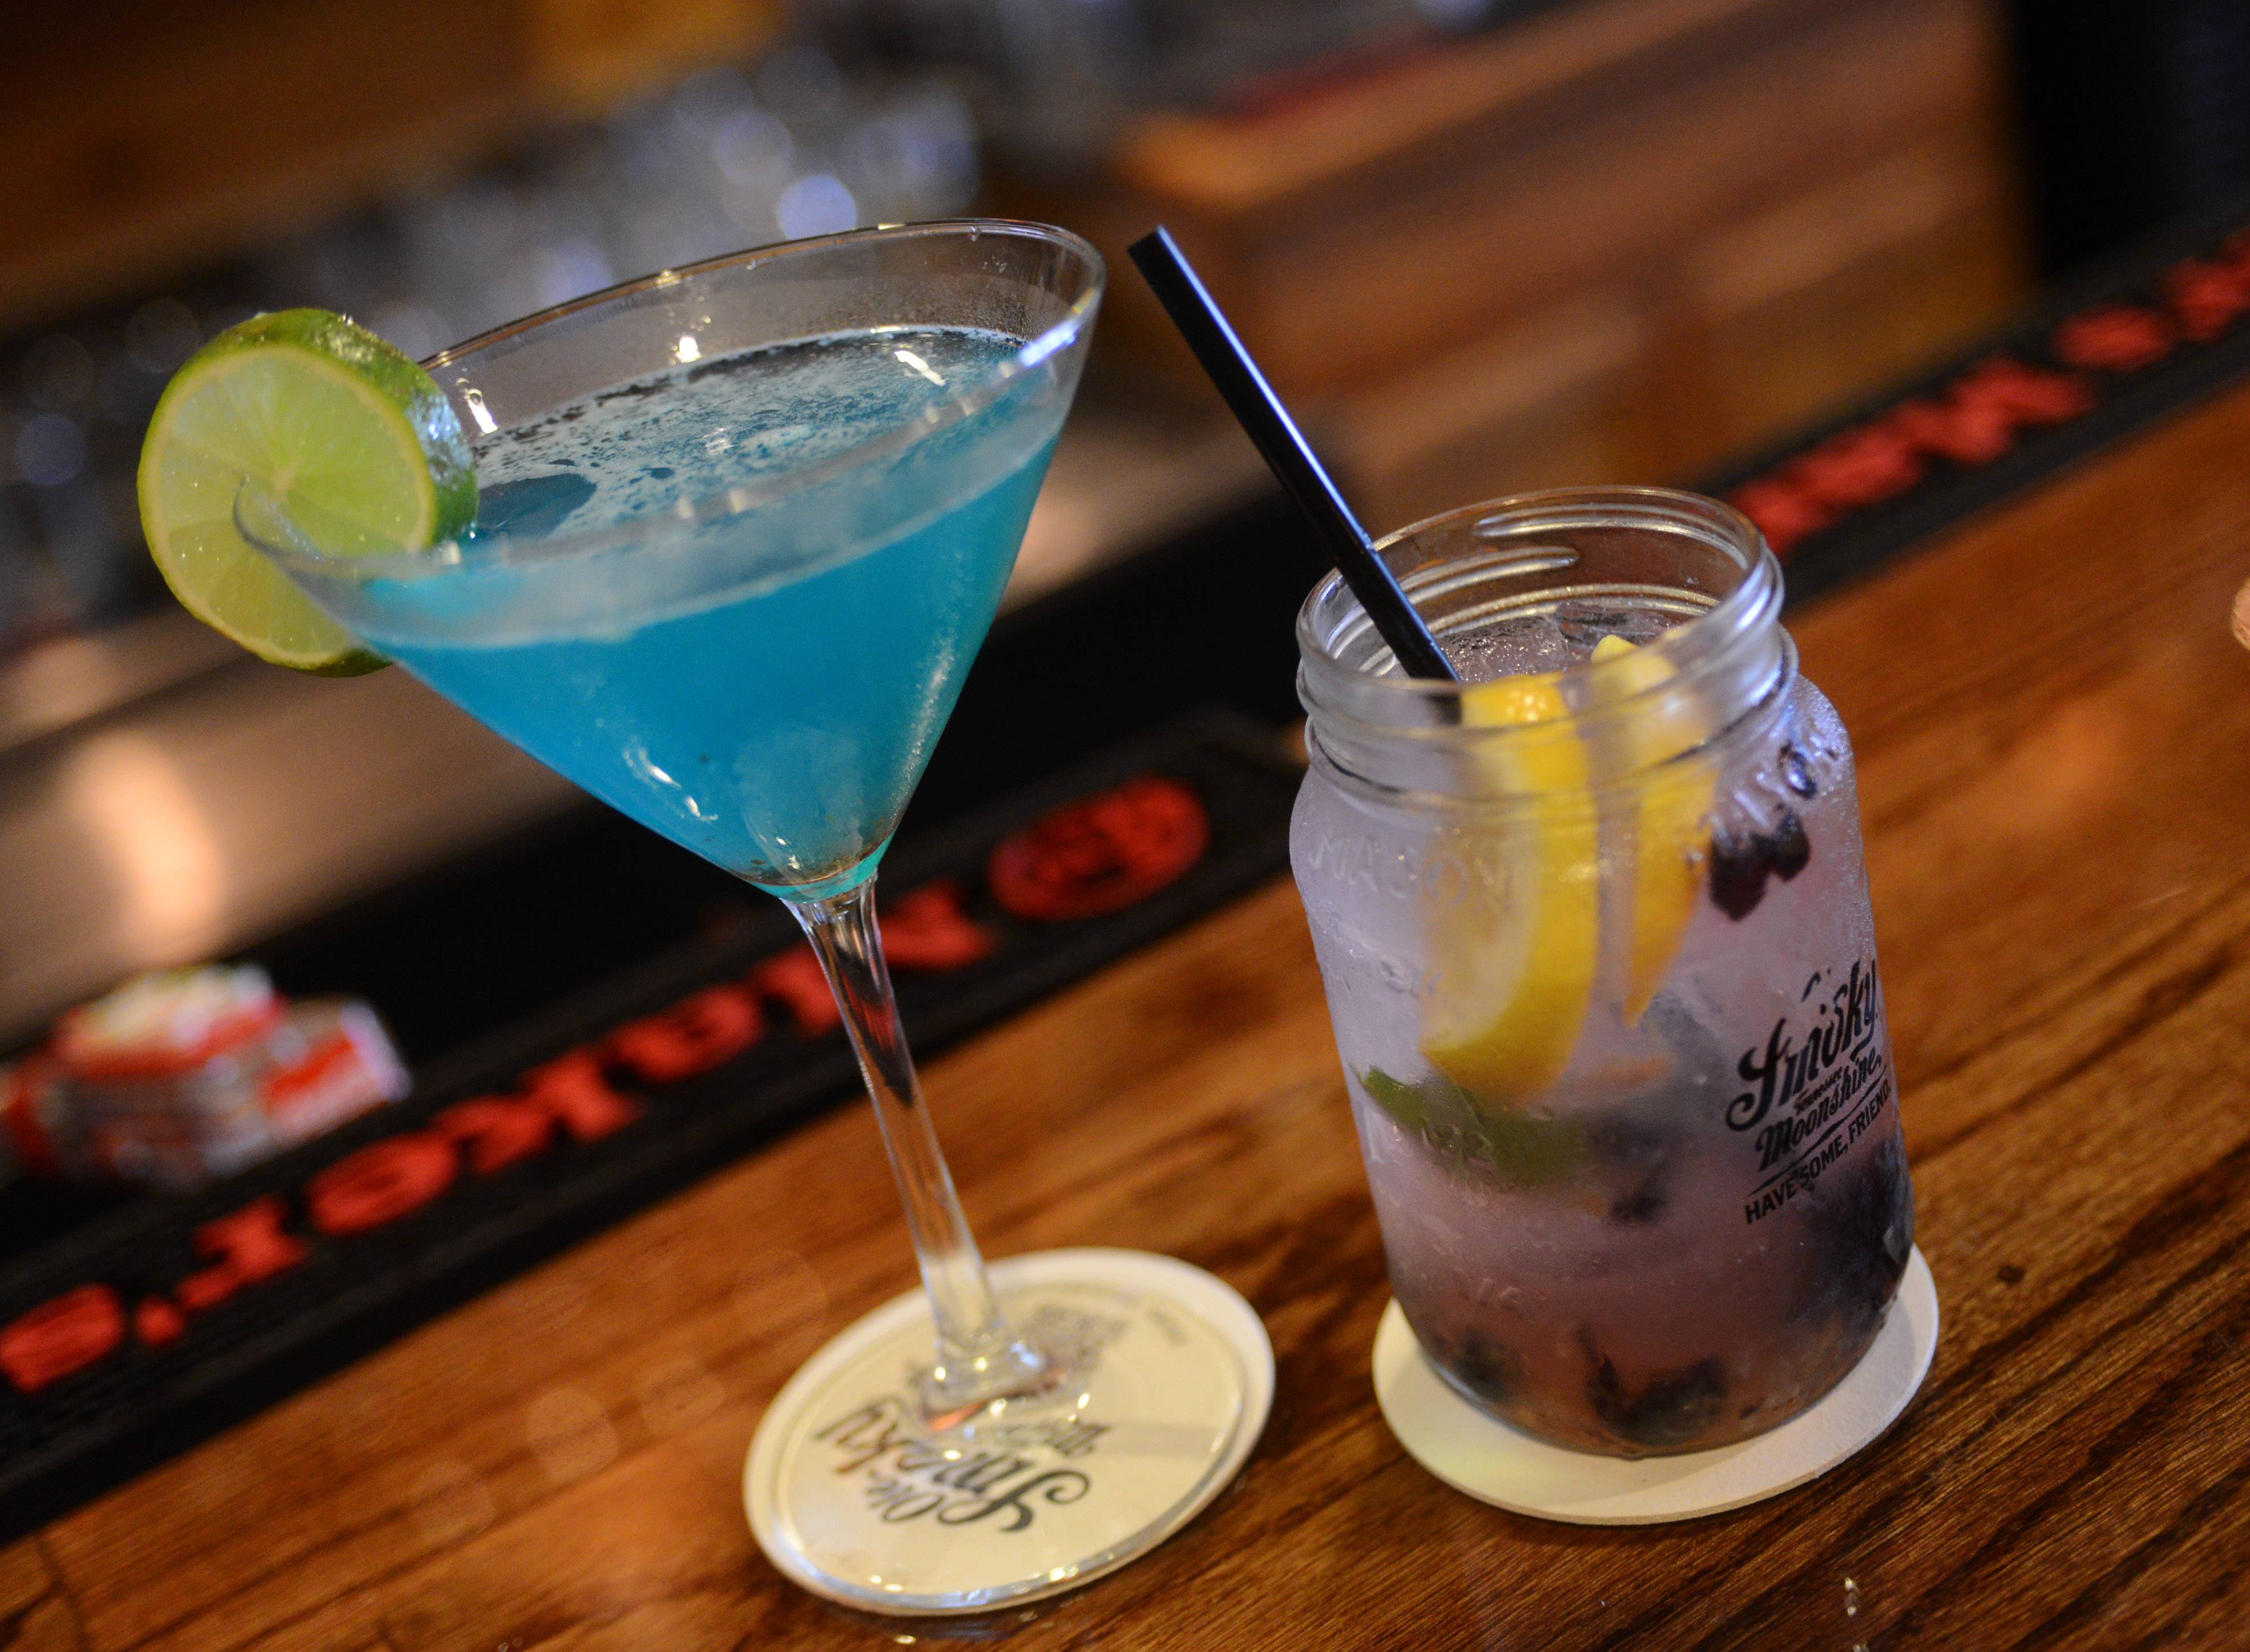 The Blue Lagoon, left, and Bees Knees are among the cocktails at The Still Bar and Grill in Bartlett.